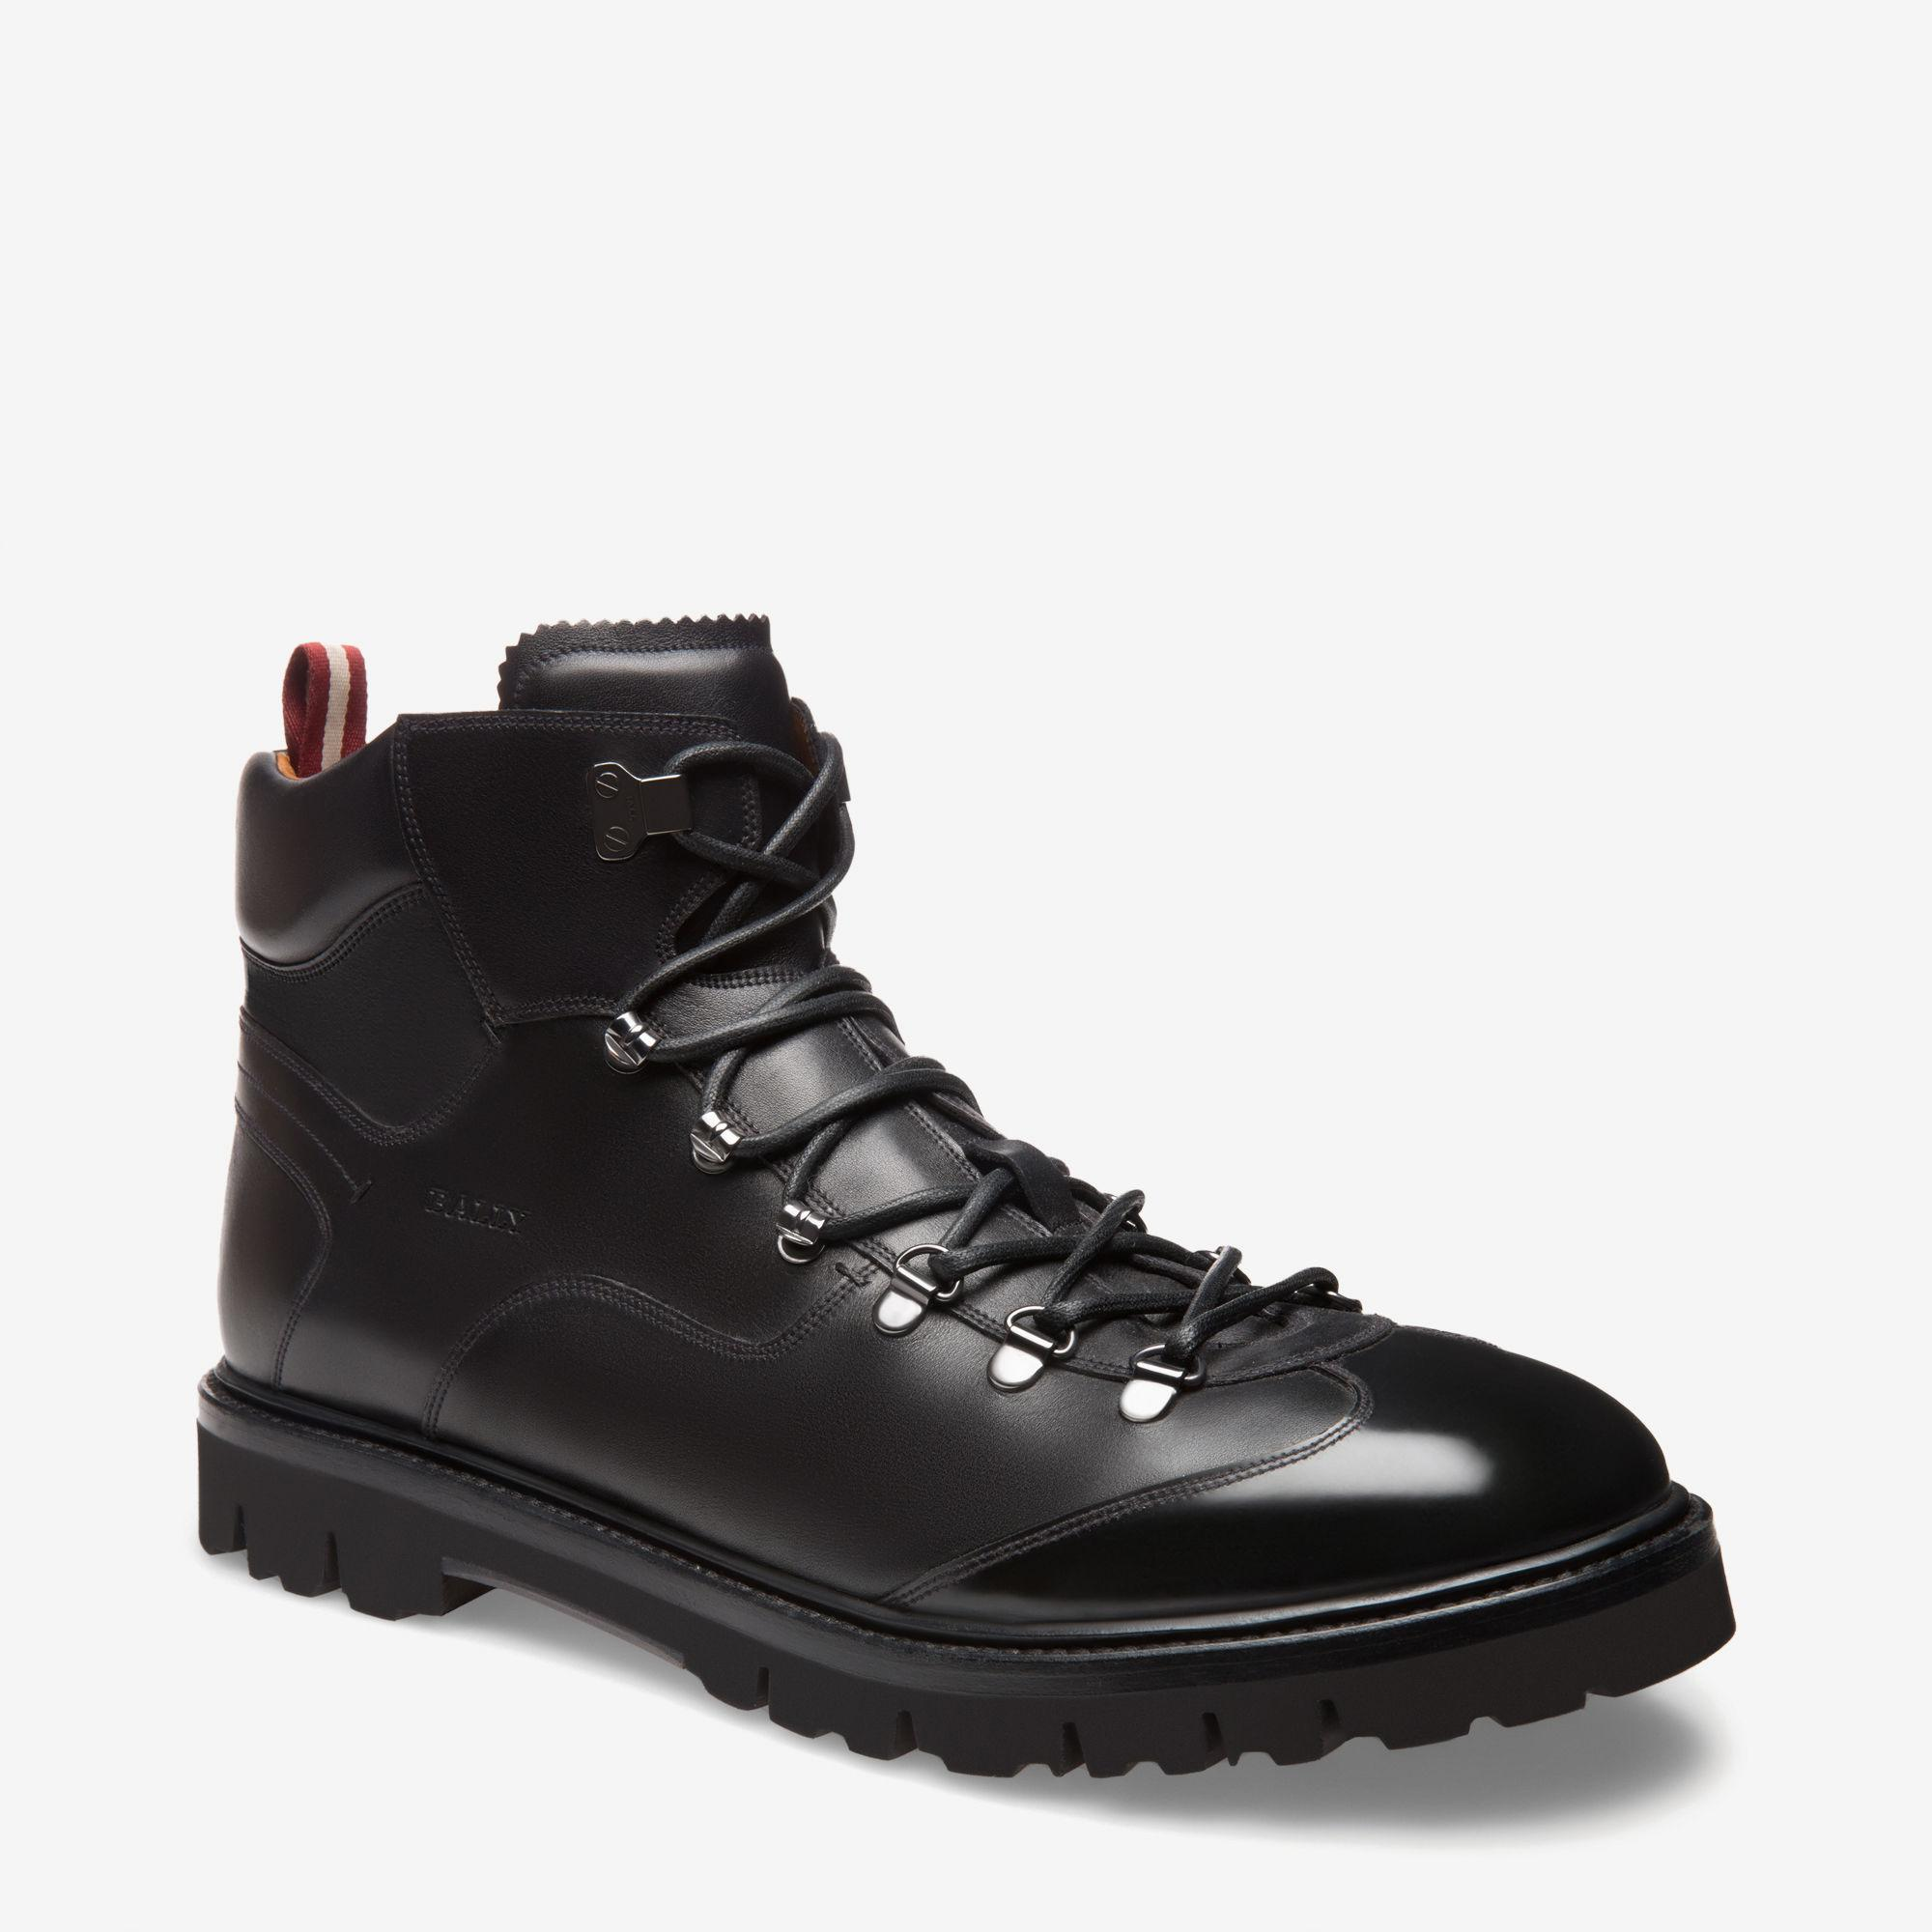 cheap countdown package discount exclusive Bally Charls hiking boots discount reliable discount visa payment usGAsIab